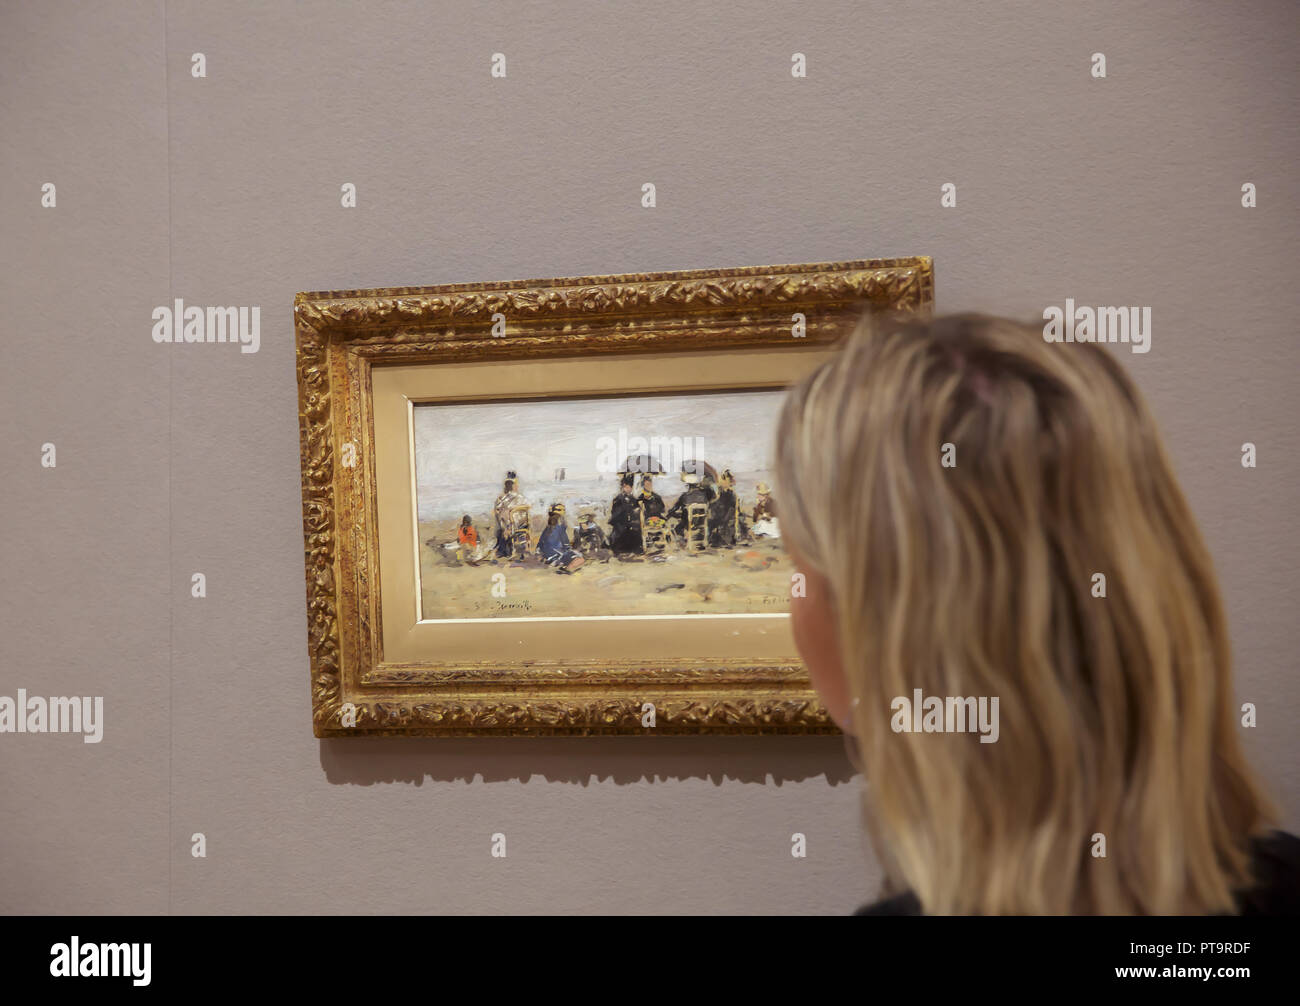 London,UK,8th October 2018,Bonhams Photocall, on display: EUGÈNE BOUDIN (1824-1898) Trouville, scène de plage. Estimatef at £ 100,000 - 150,000. The impressionist and modern art sale takes place on the 11th October at 5pm. Credit: Keith Larby/Alamy Live News - Stock Image